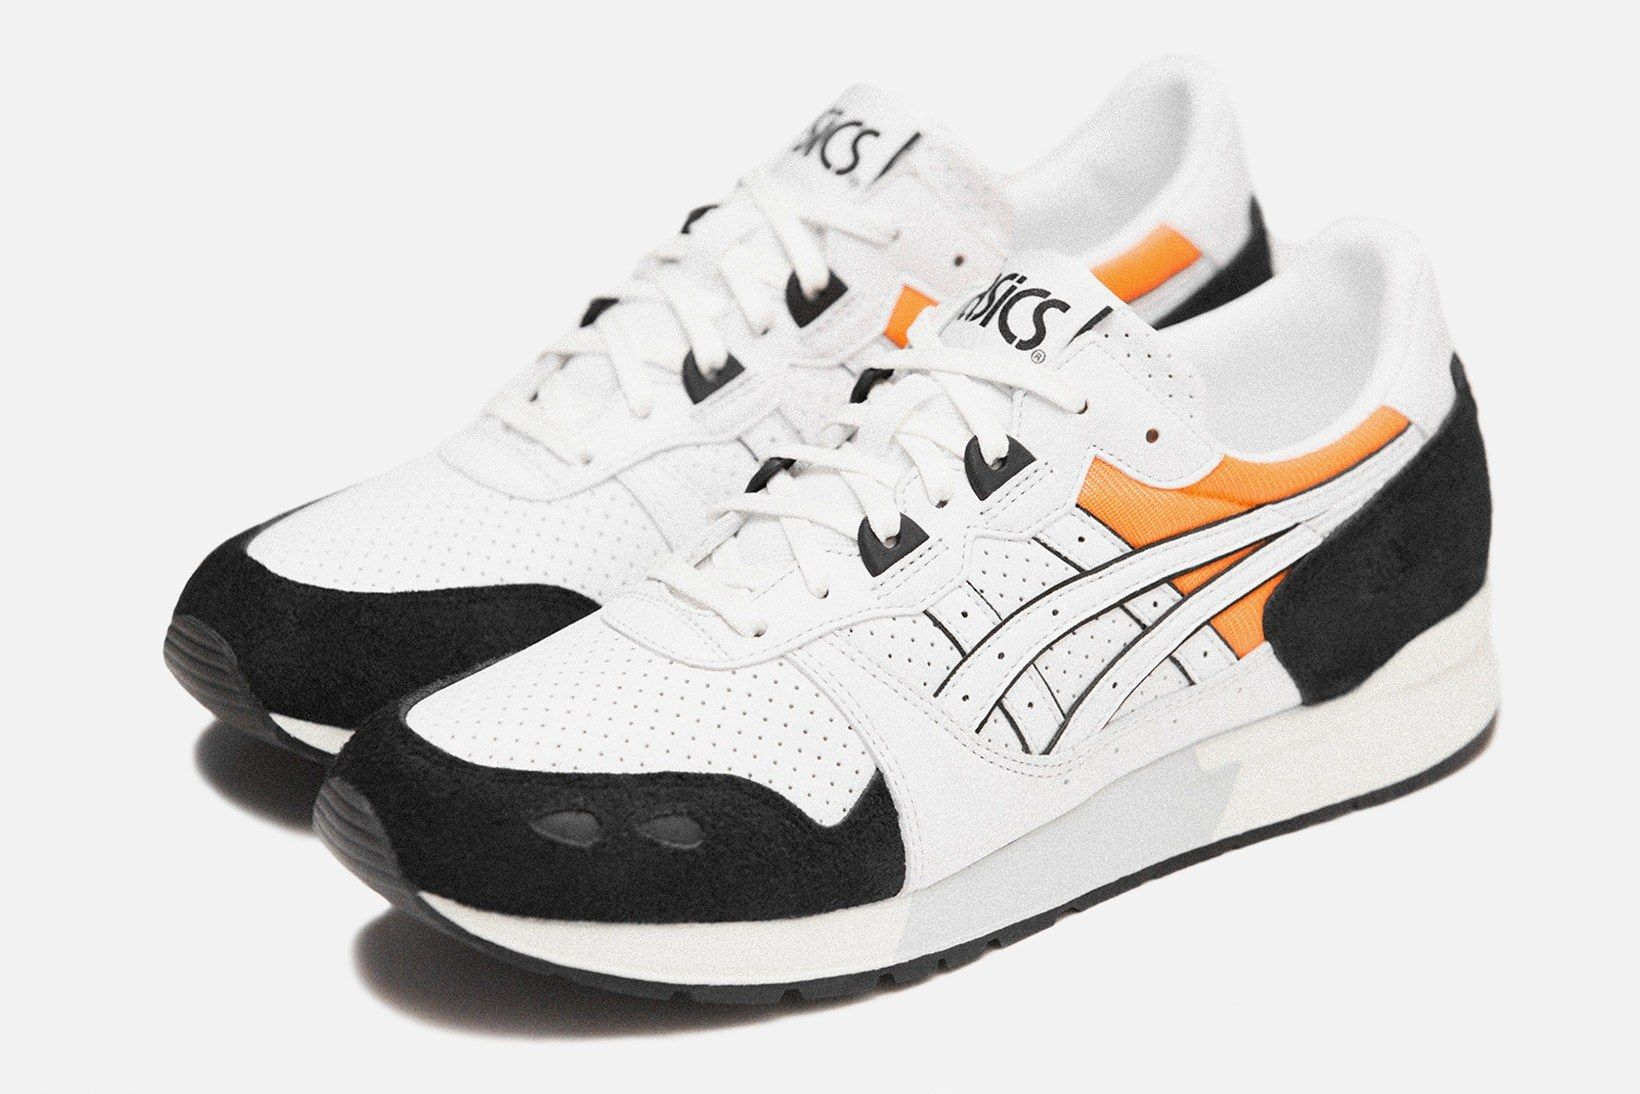 Asics Gel Lyte Model 2017 Holiday Collection 4